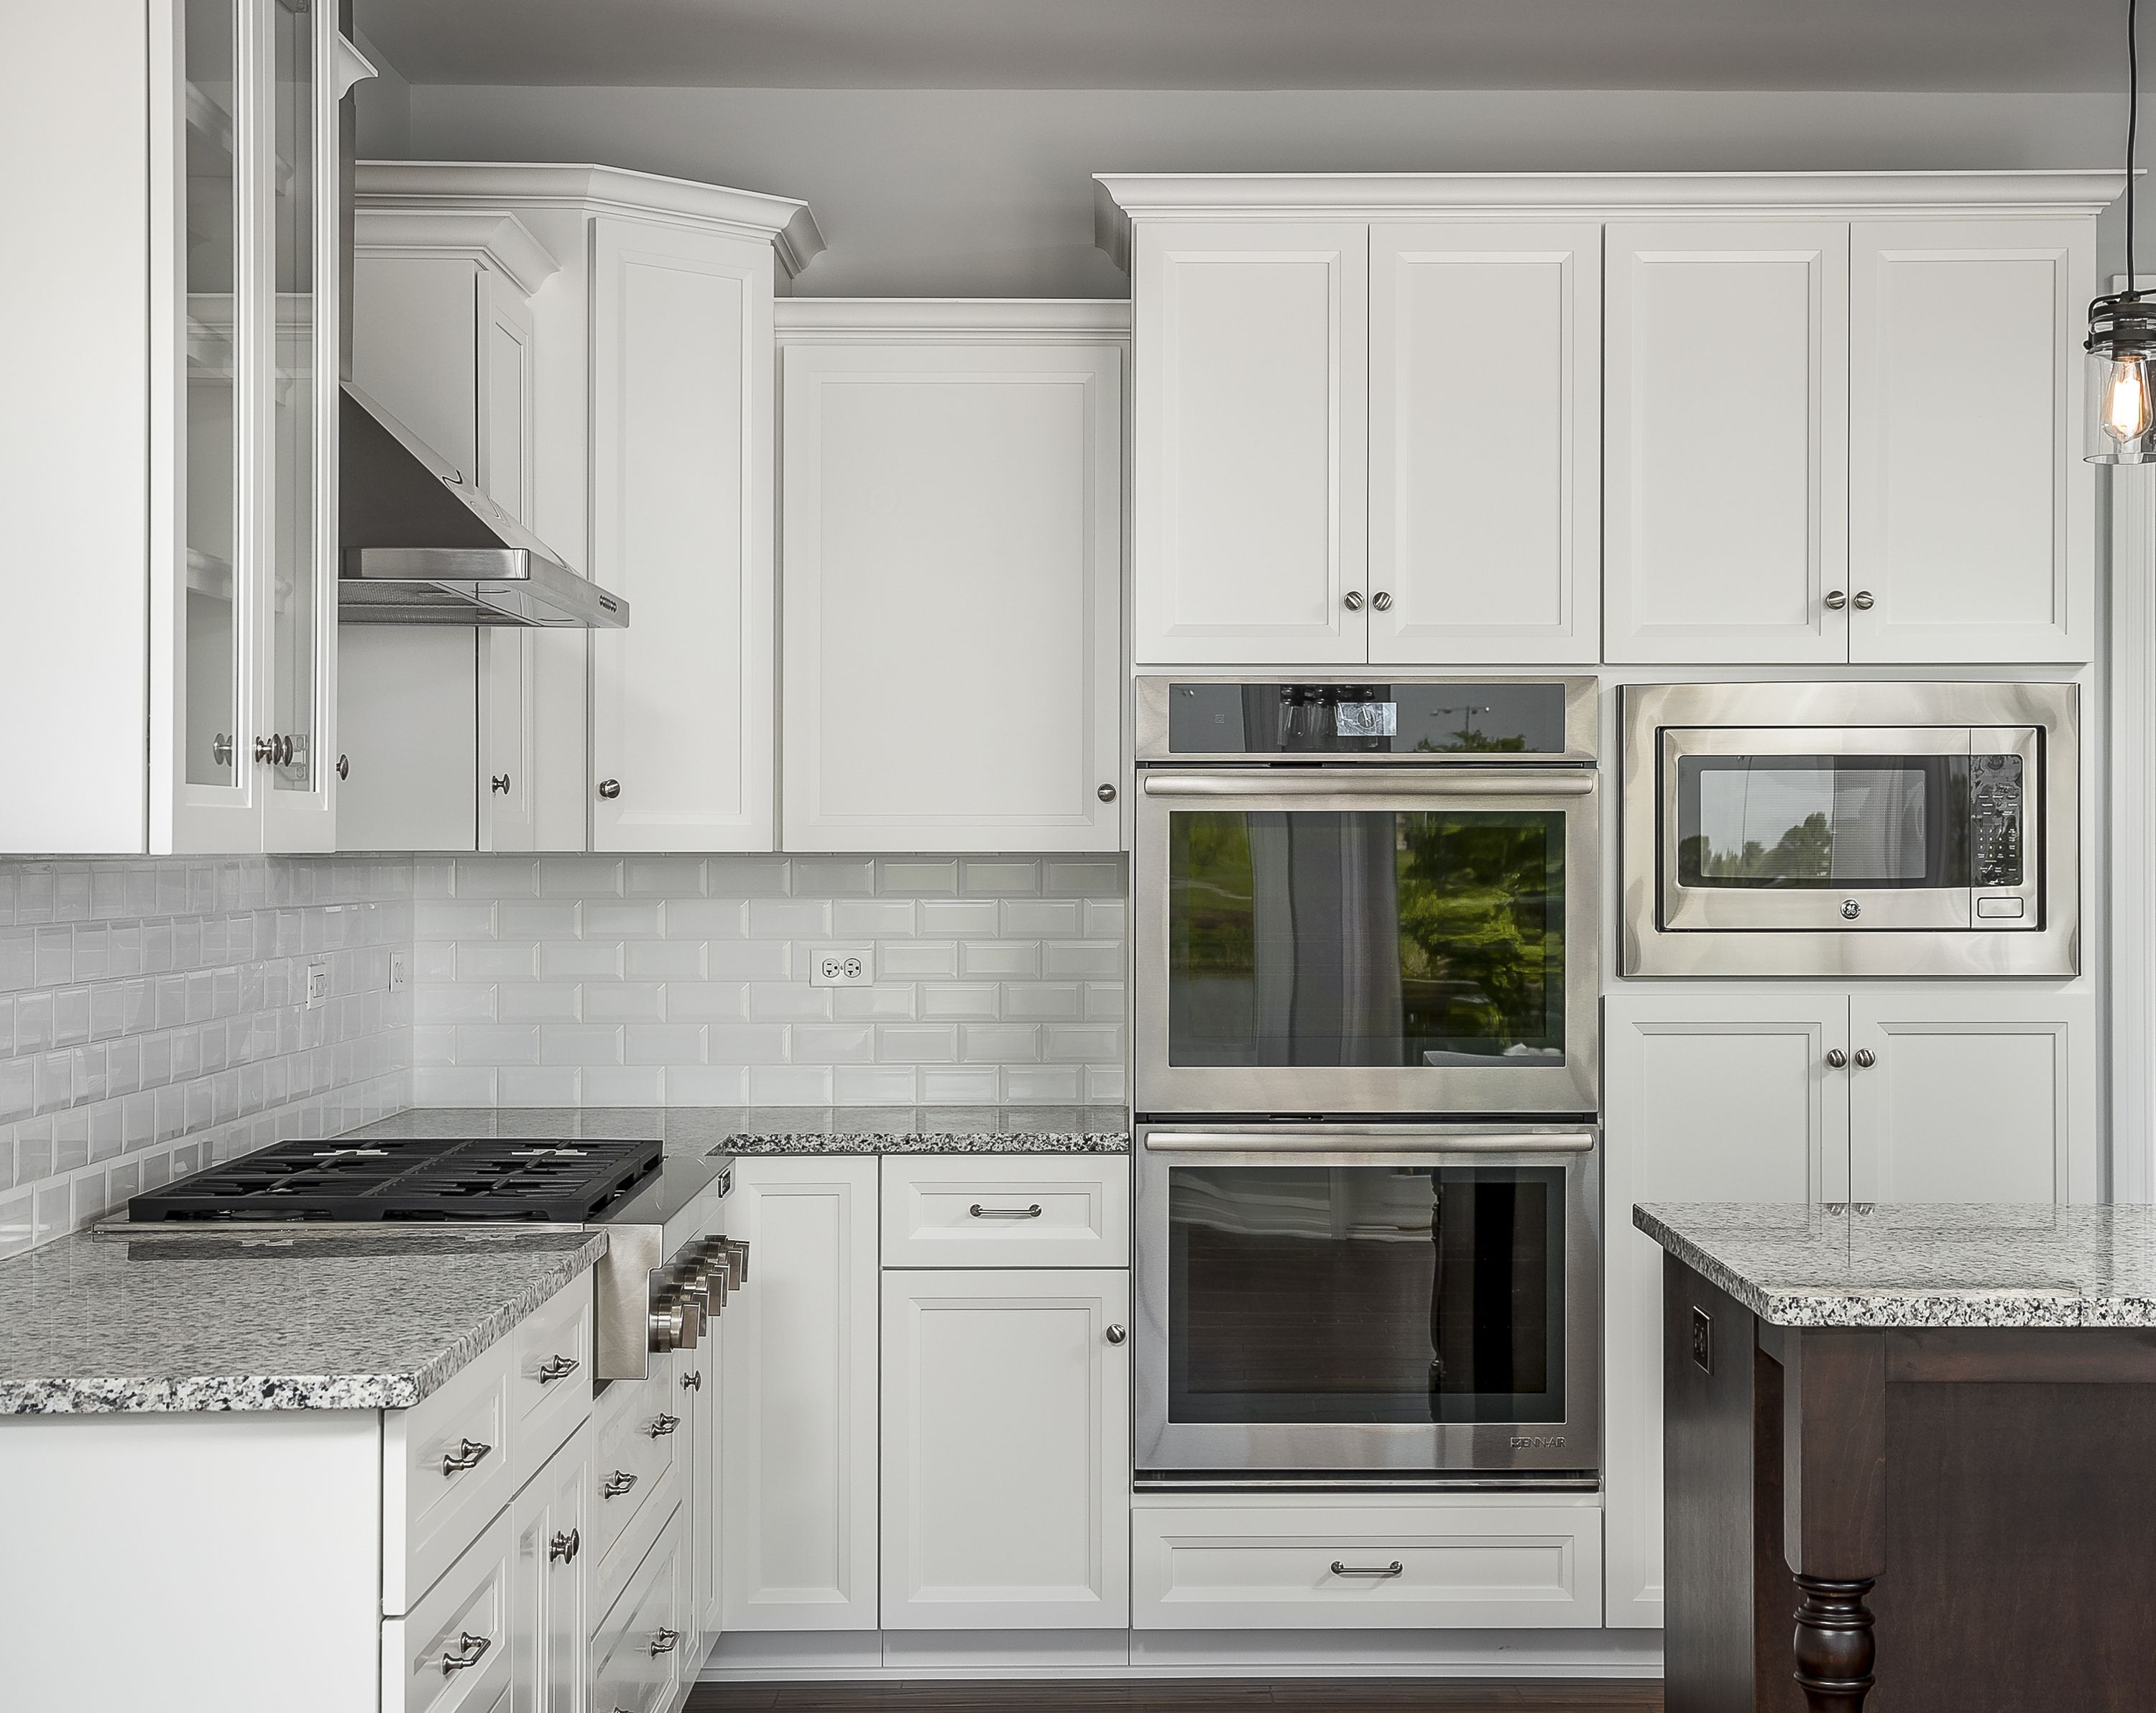 The Range Hood Double Oven Cooktop And White Cabinets Are Just A Few Of Our Favorite Things In Kitchen Remodel Small White Kitchen Remodeling Kitchen Remodel